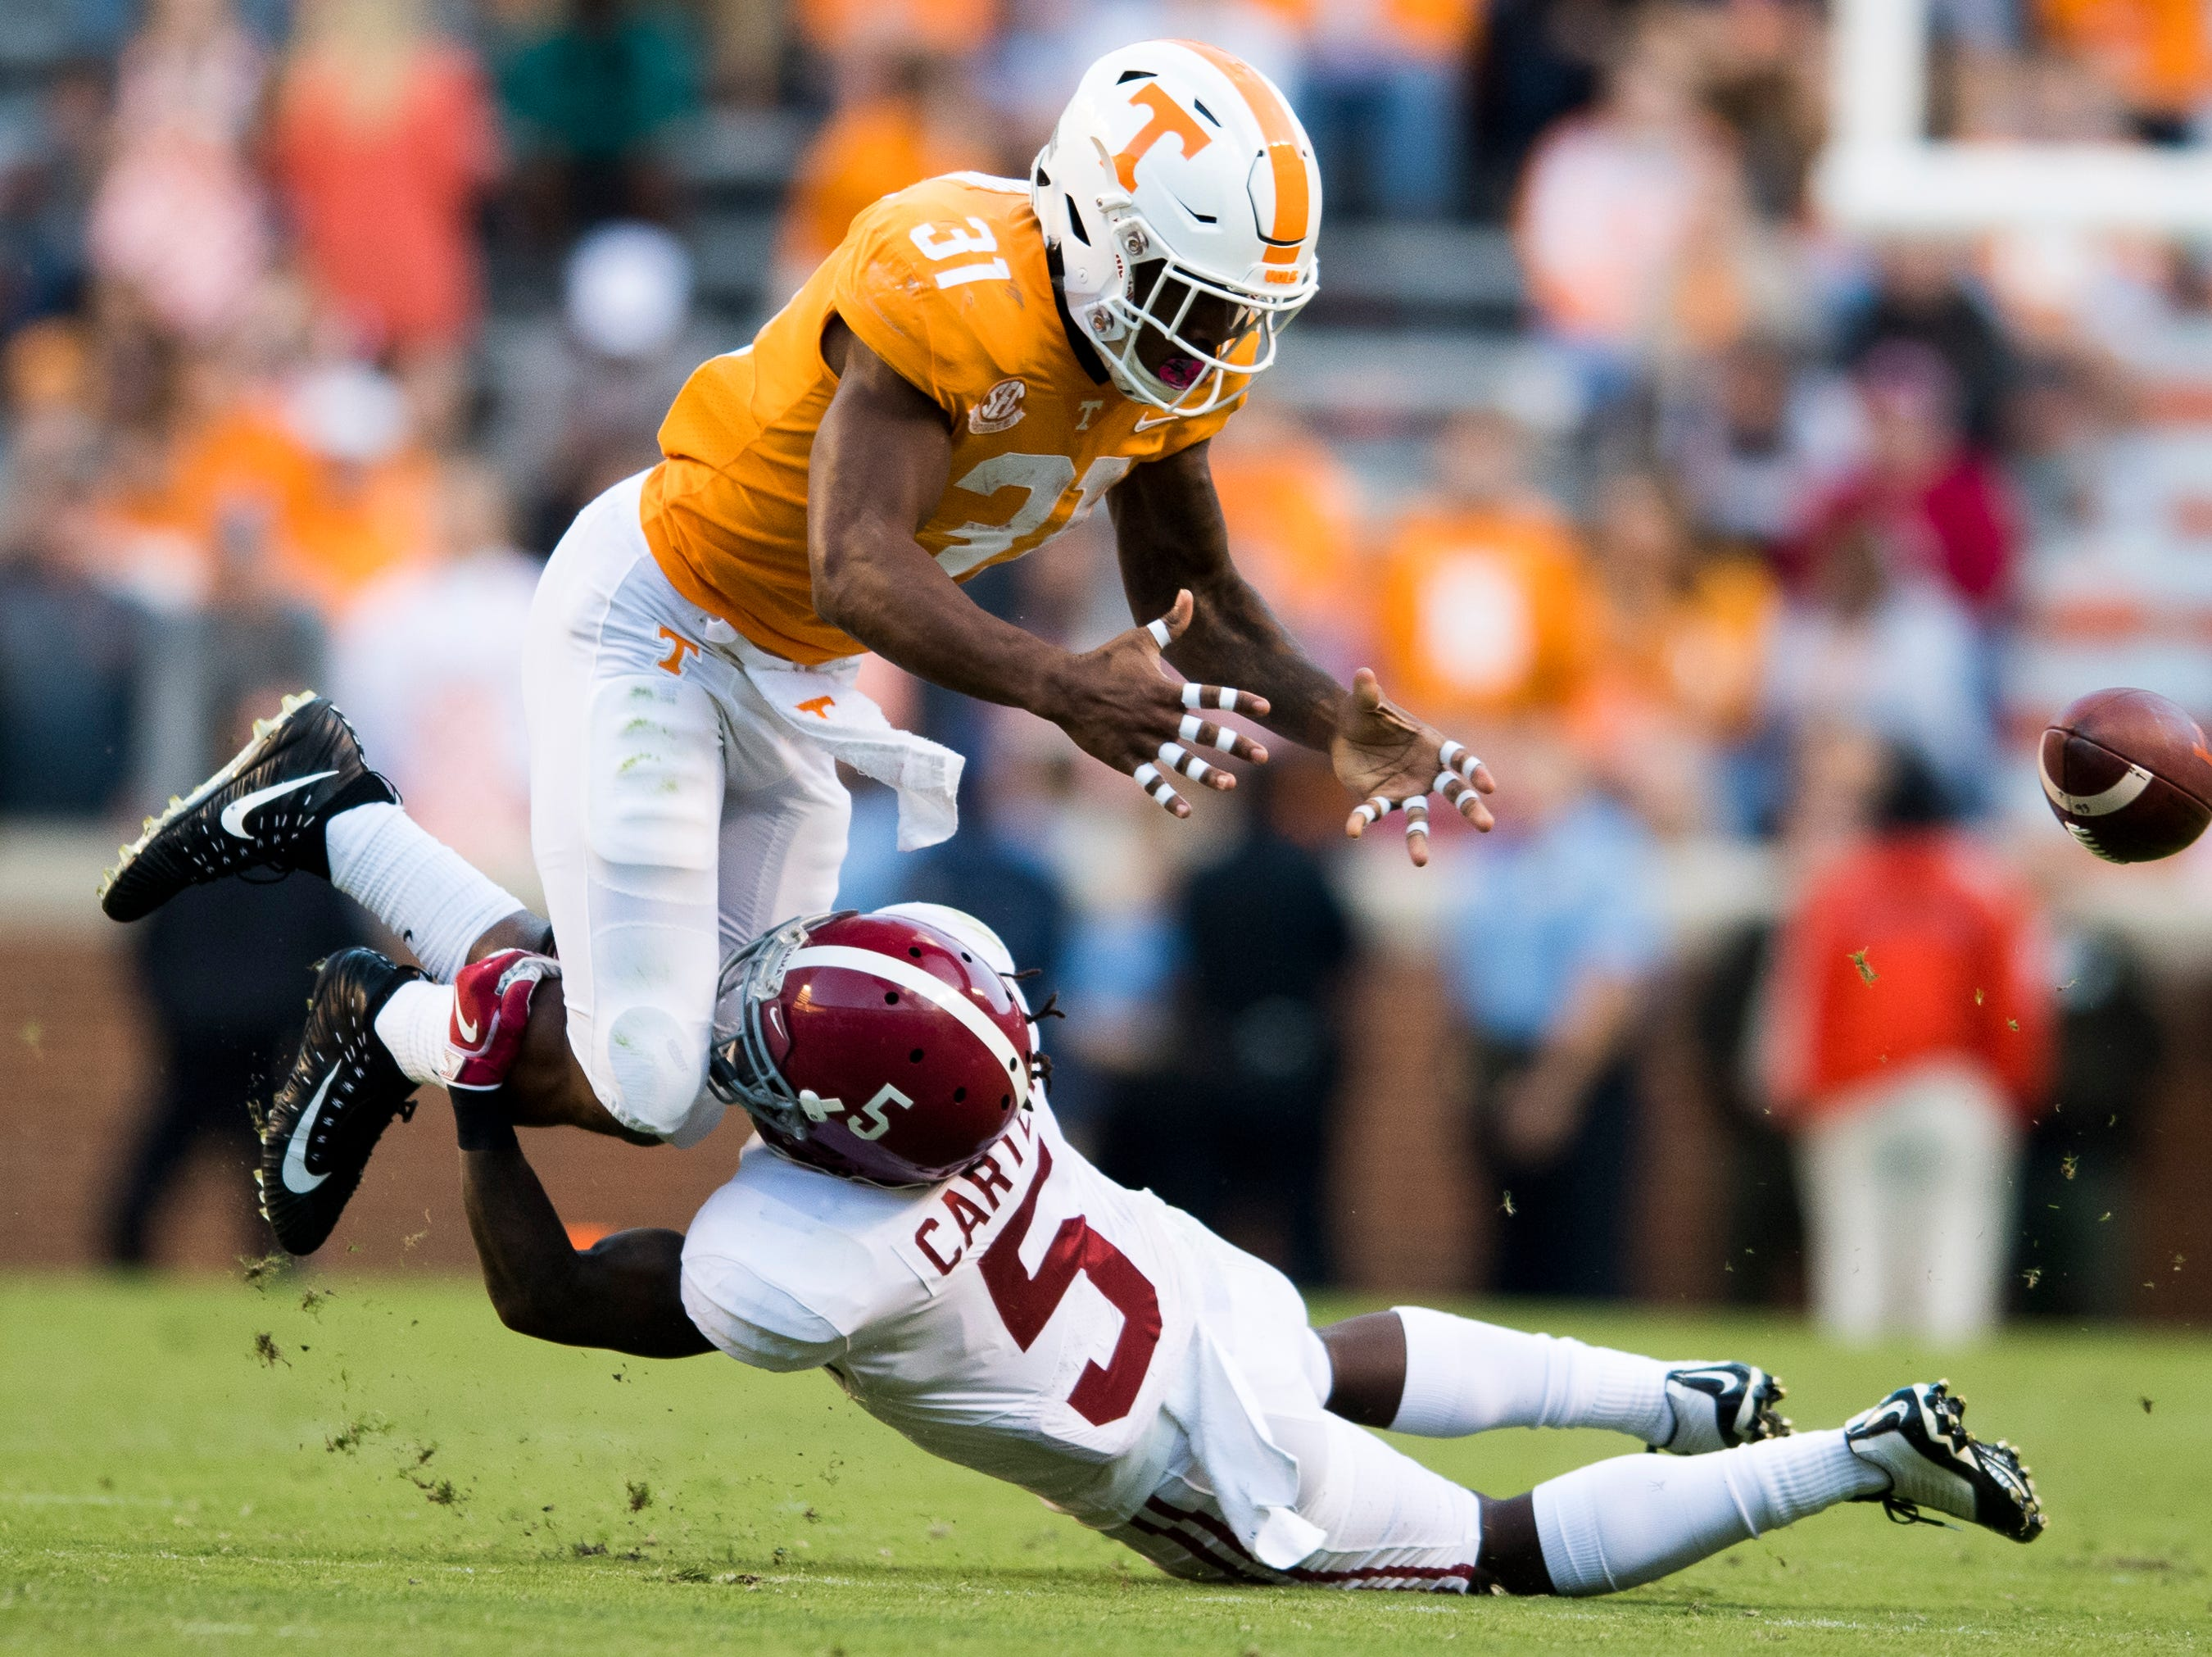 Tennessee running back Madre London (31) loses the ball as Alabama defensive back Shyheim Carter (5) tackles him during a game between Tennessee and Alabama at Neyland Stadium in Knoxville, Tennessee on Saturday, October 20, 2018.